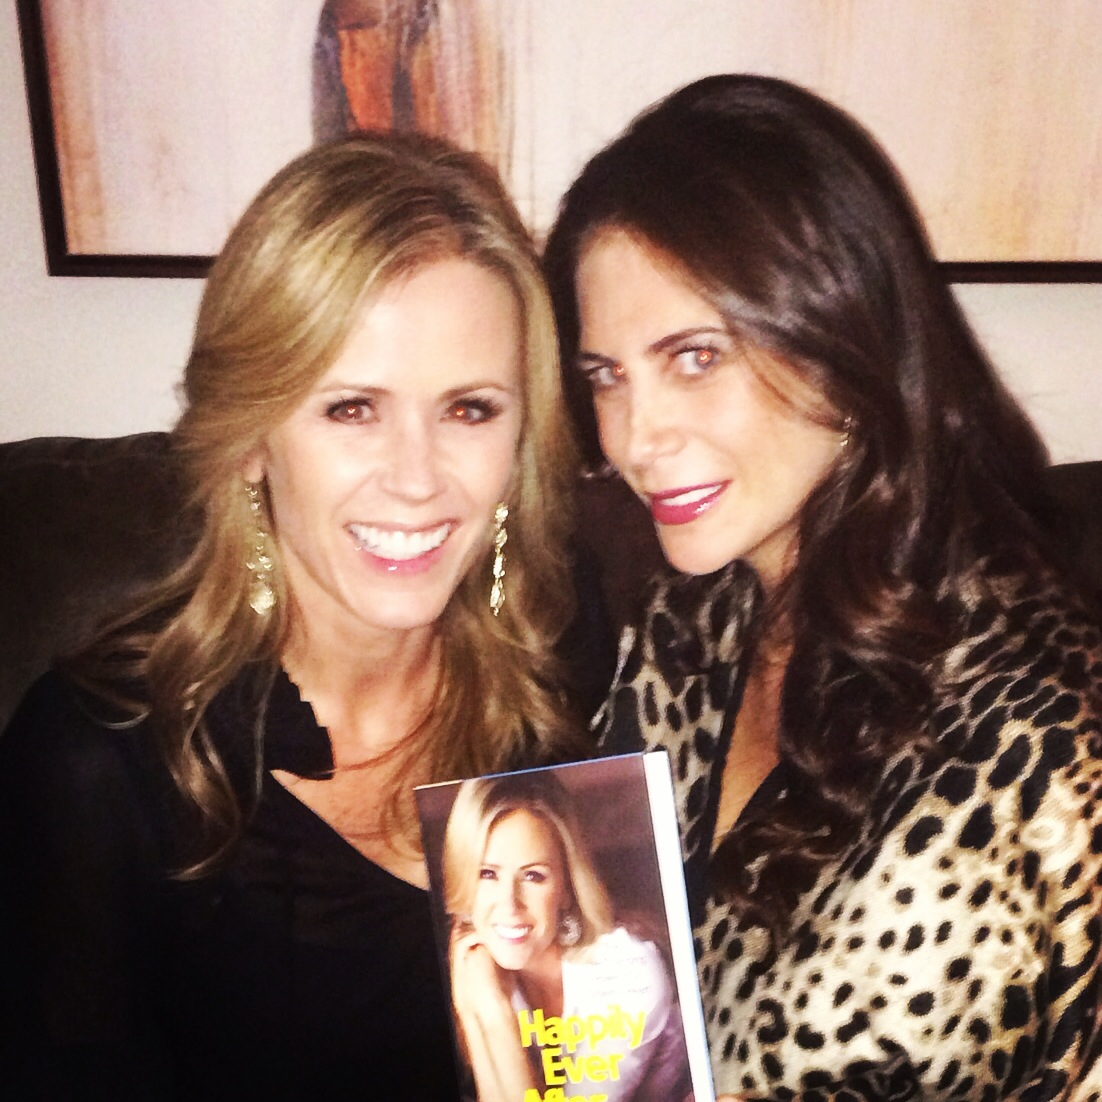 divalysscious moms fabulous events for expecting trista sutter and moi